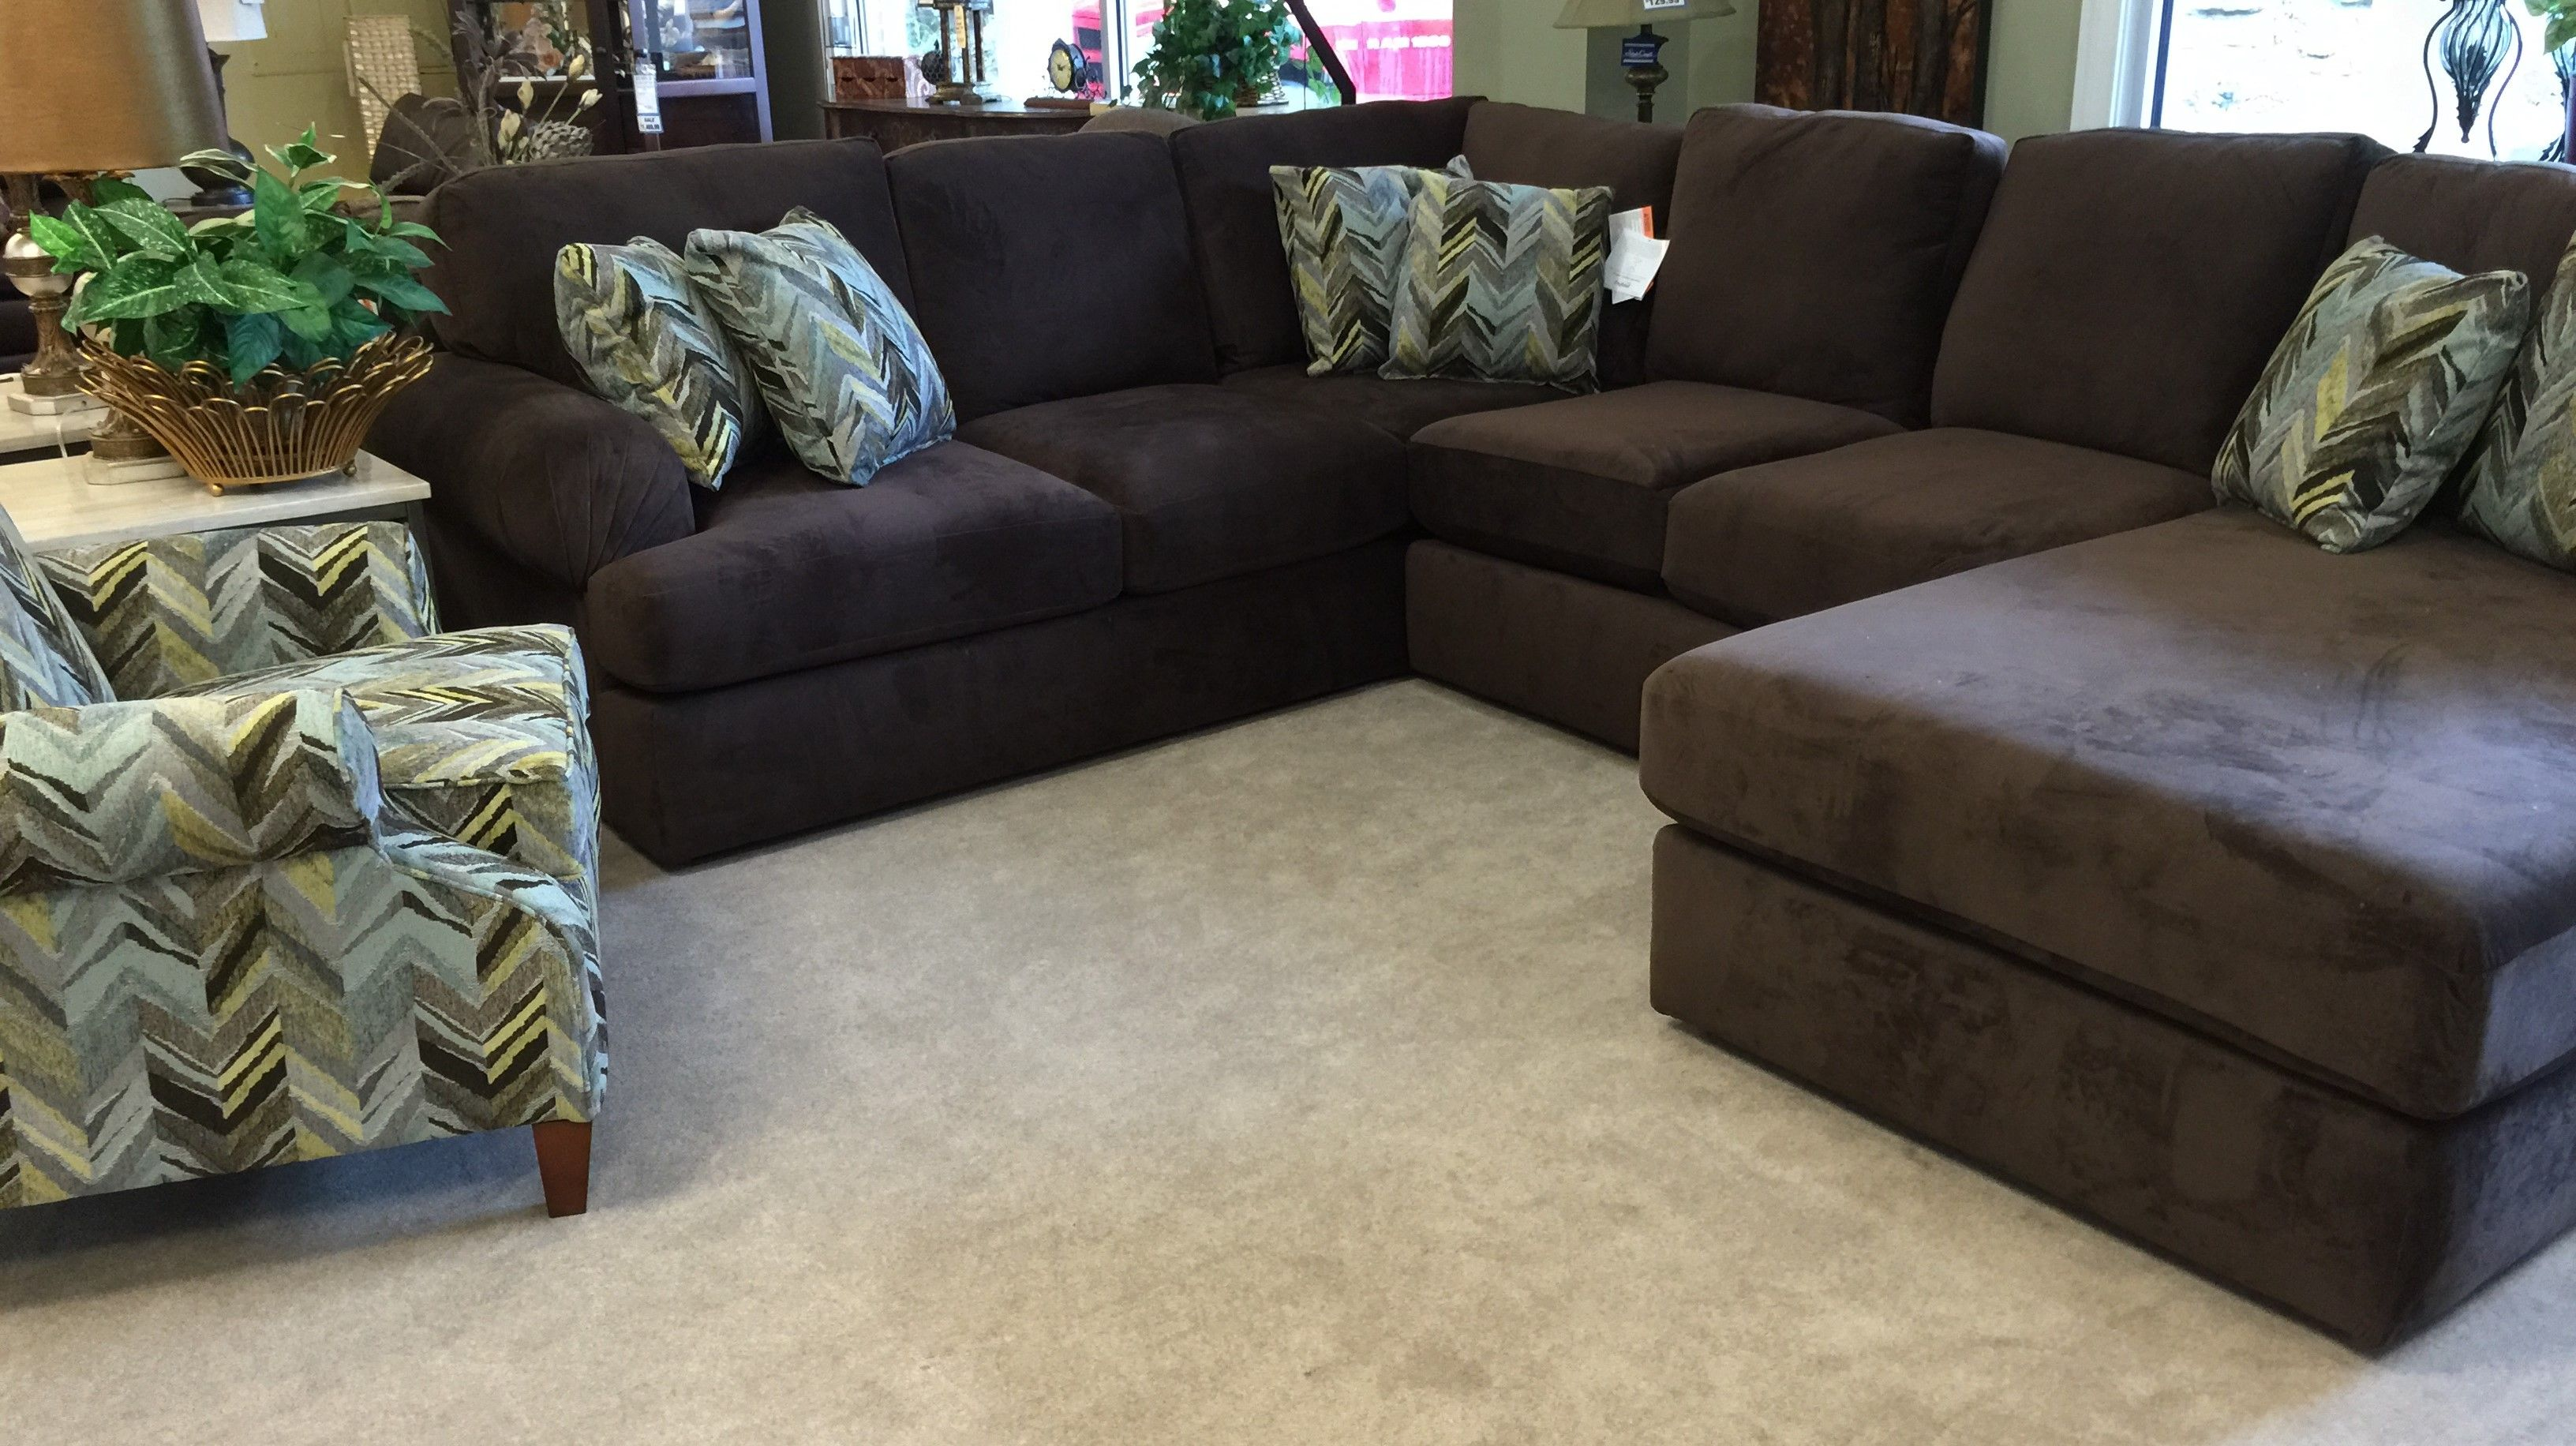 England 8250 Romance Java Sectional Available At Kemper Furniture In Hazard Ky Kemperfurnitureinc Com Or 1606 439 2400 Sectional Furniture Kemper